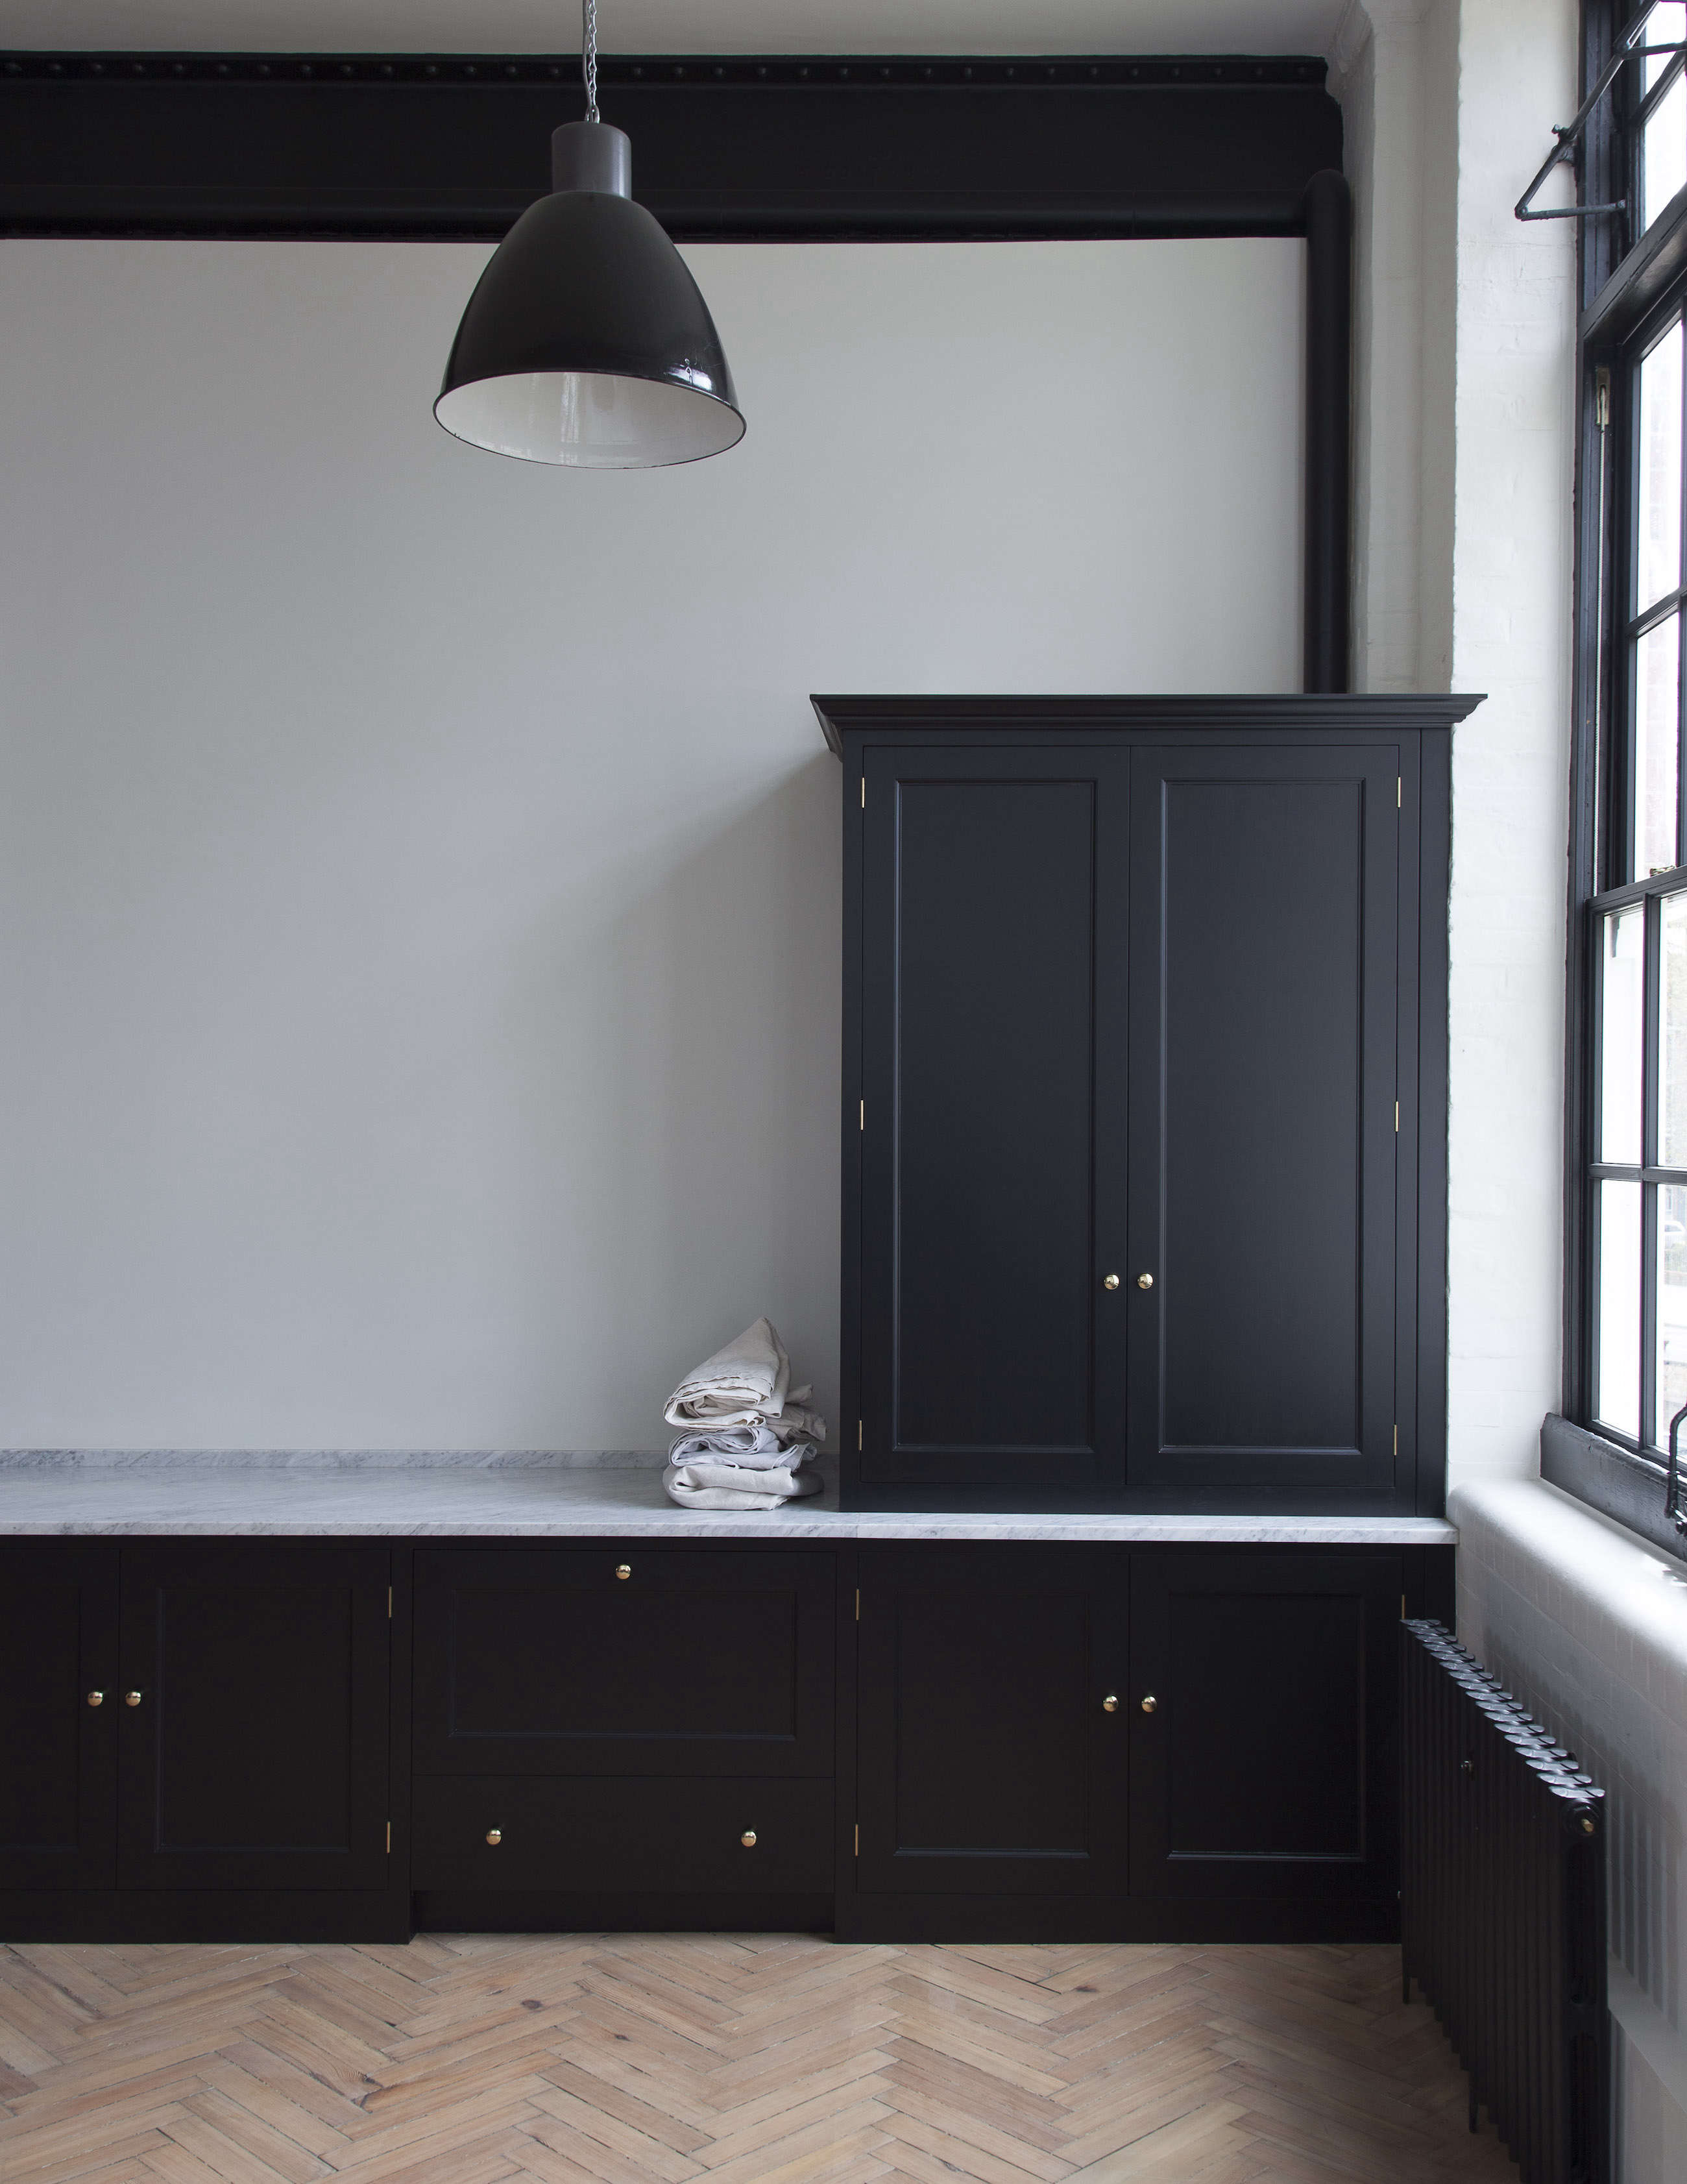 now available in the us: uk design company plain english's kitchens | remodelis 11